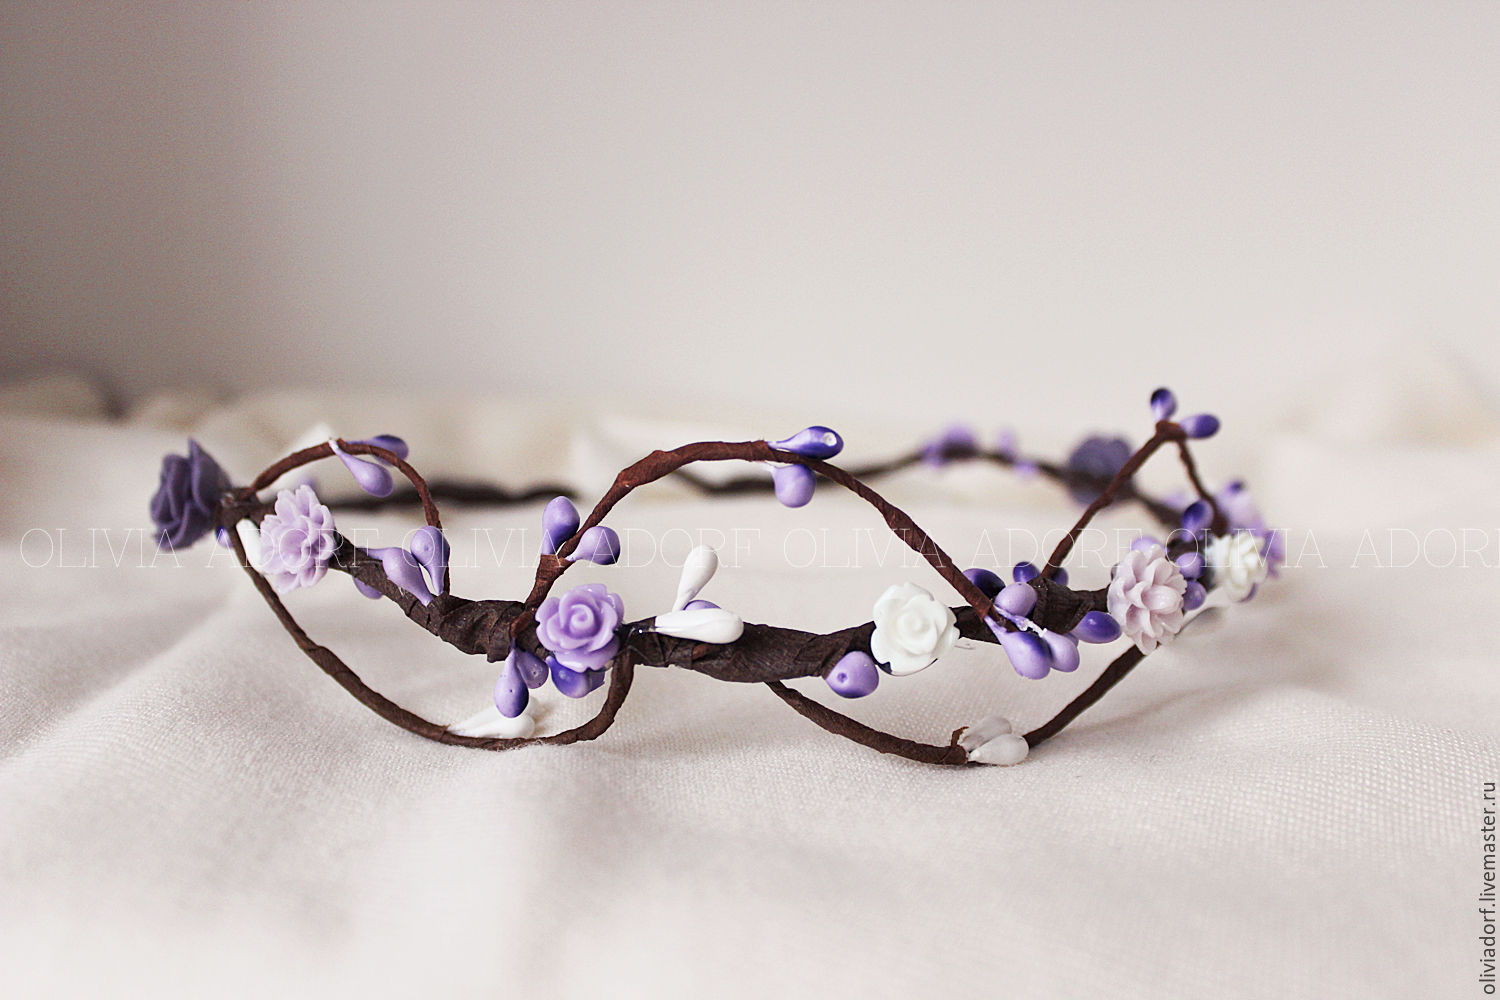 Wedding floral crown with white and violet roses bridal headpiece wedding floral crown with white and violet roses bridal headpiece flower crown izmirmasajfo